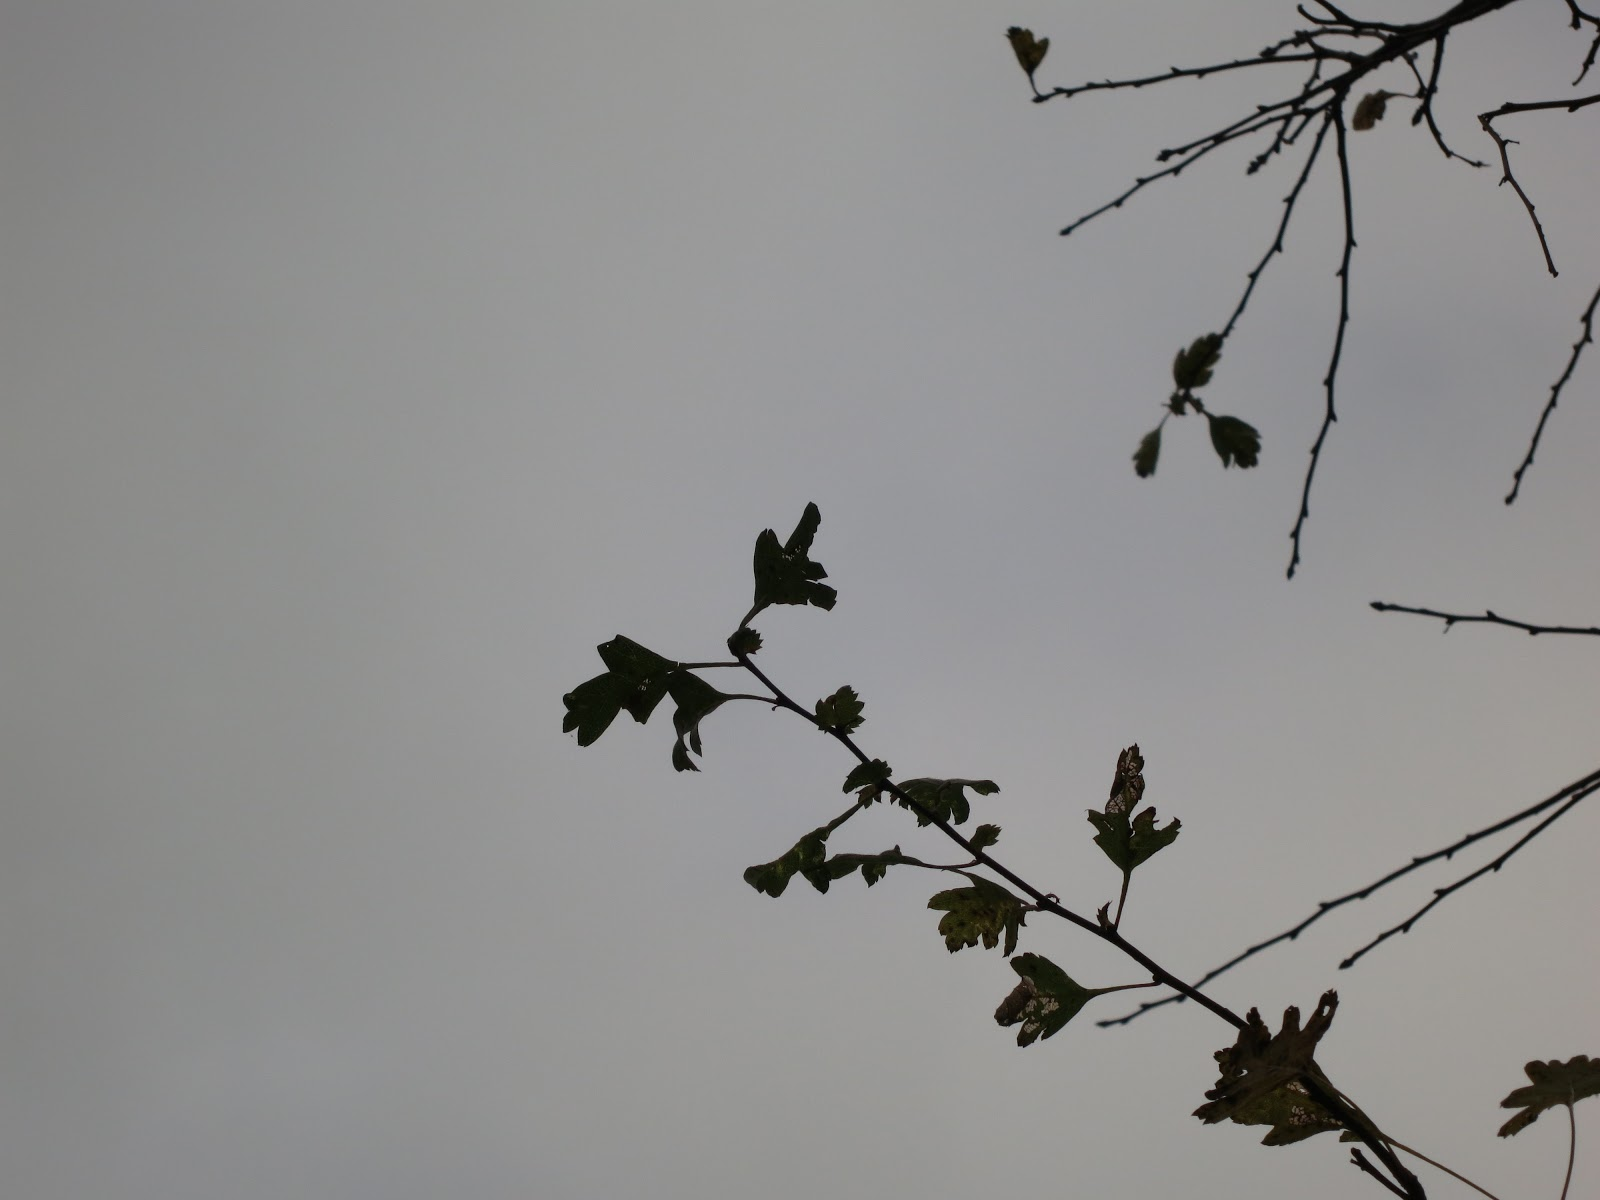 Hawthorn leaves silhouetted against a grey sky.